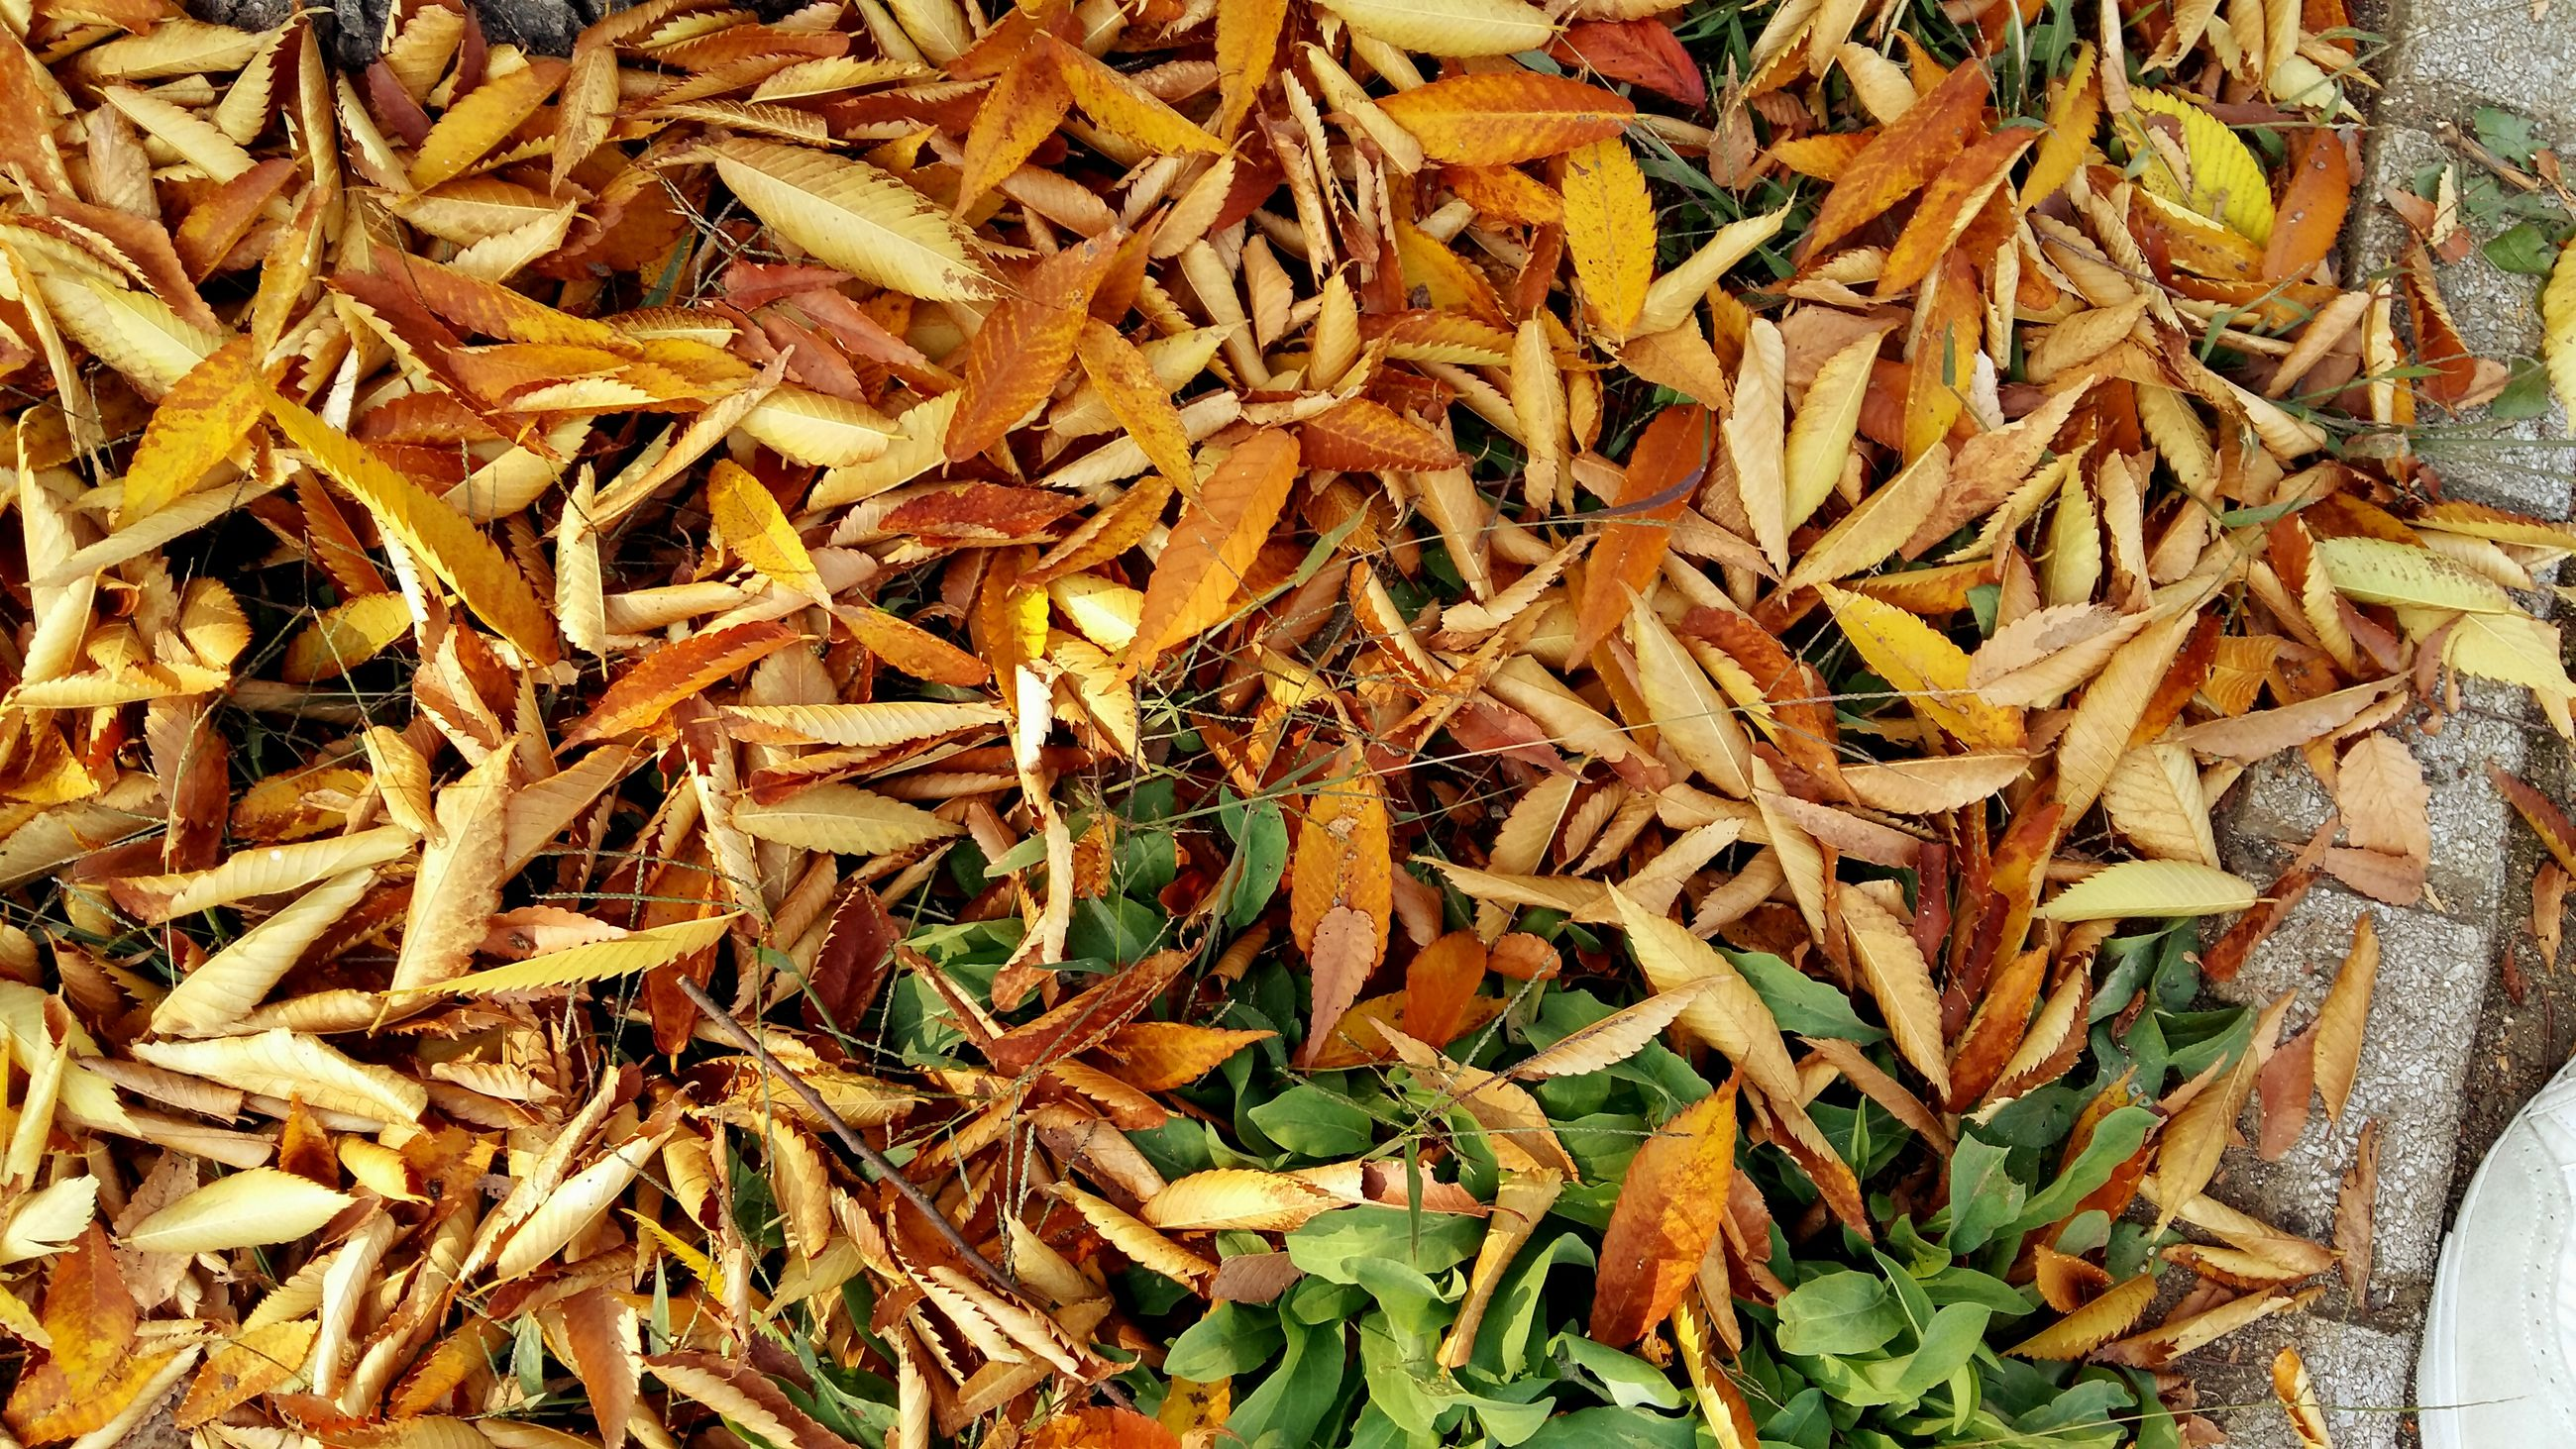 leaf, dry, high angle view, abundance, full frame, backgrounds, leaves, autumn, change, close-up, nature, field, brown, large group of objects, day, season, no people, fallen, natural pattern, outdoors